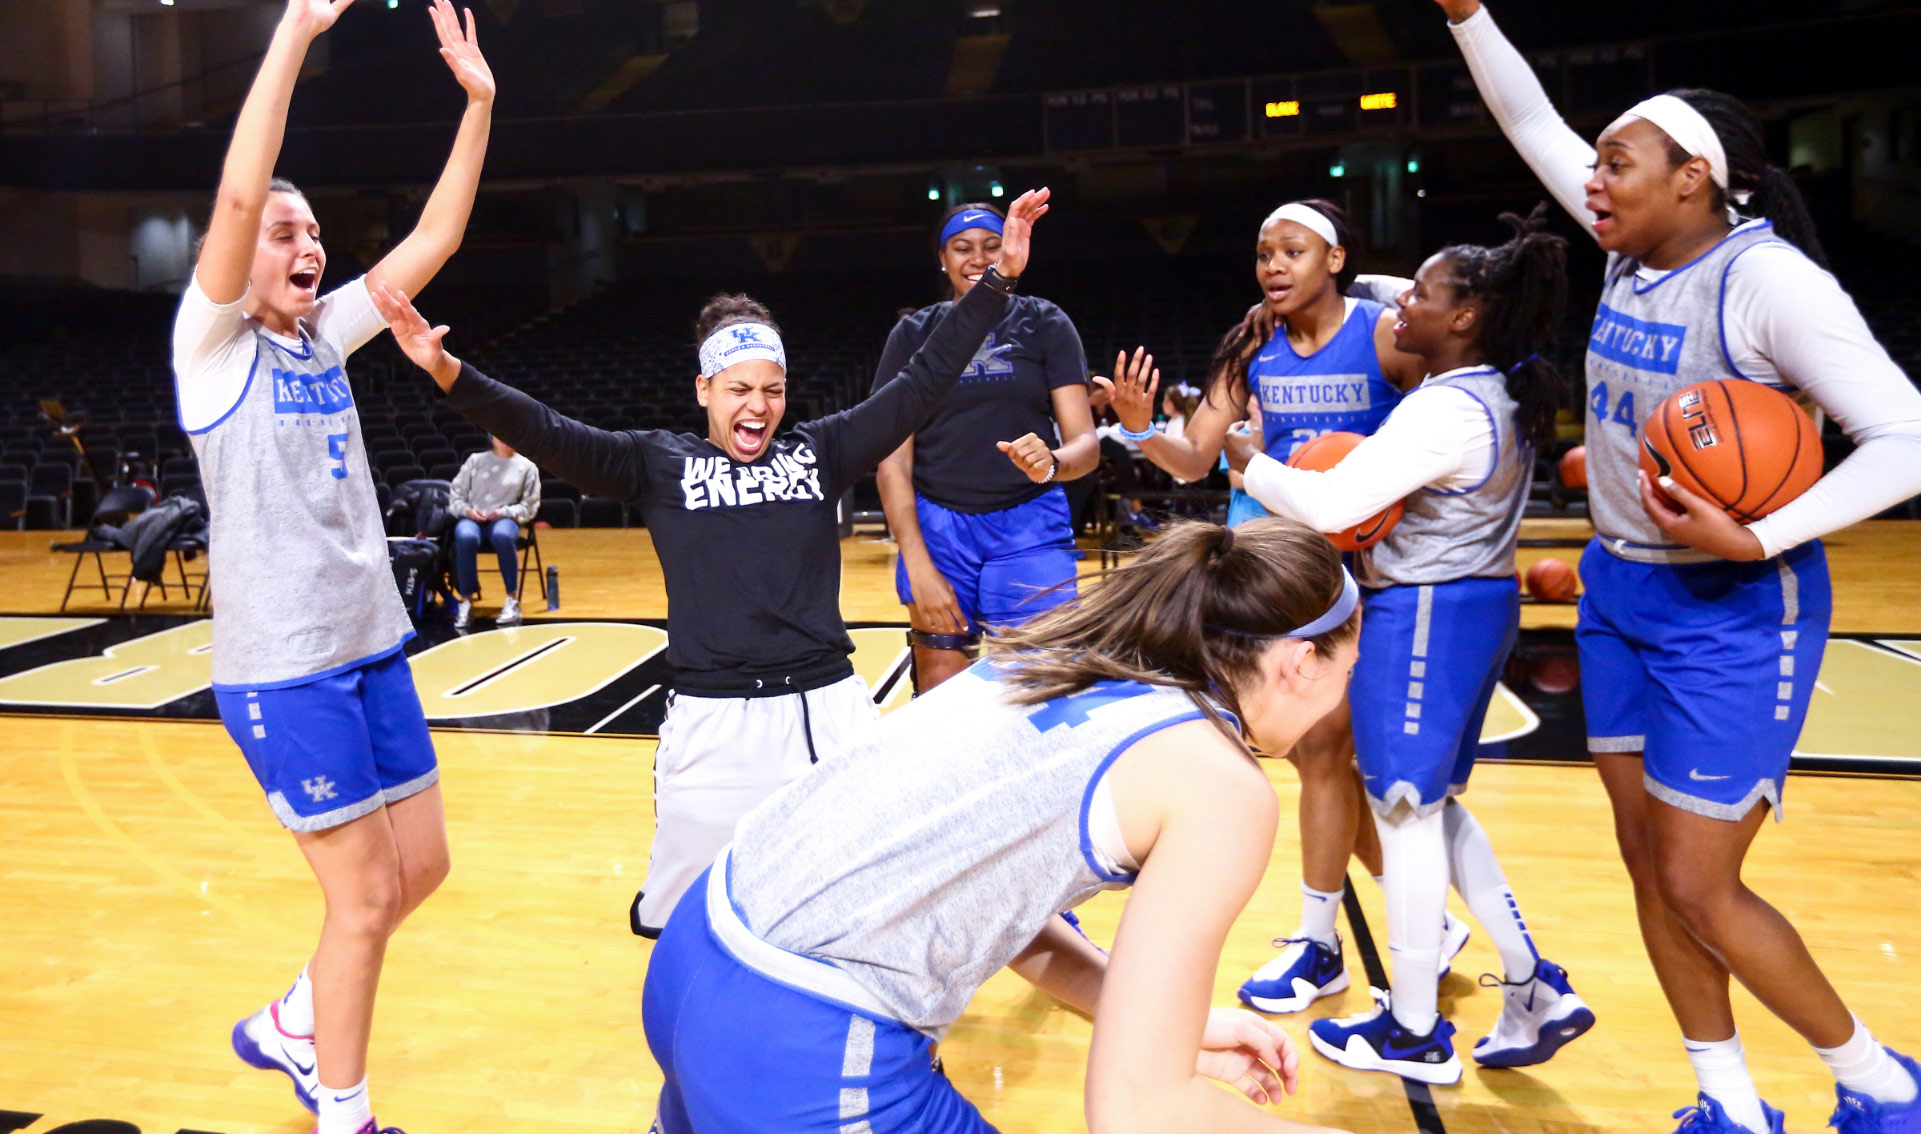 Amber and six of her teammates, all dressed in practice uniforms, celebrate and laugh together on the court.